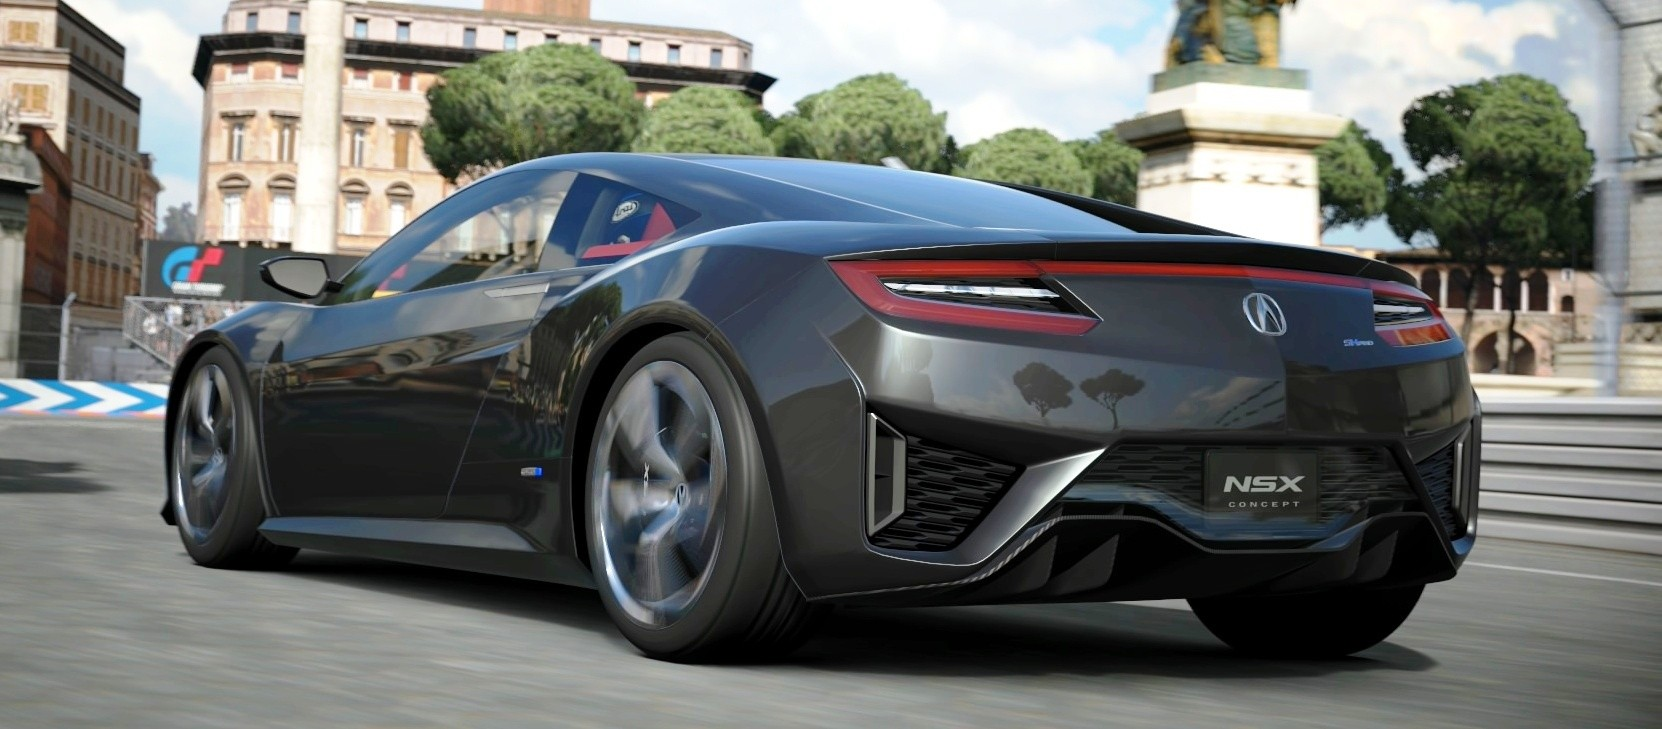 Acura NSX (Concept) Makes Thrilling Track Debut in Gran Turismo 6 Acura NSX (Concept) Makes Thrilling Track Debut in Gran Turismo 6 Acura NSX (Concept) Makes Thrilling Track Debut in Gran Turismo 6 Acura NSX (Concept) Makes Thrilling Track Debut in Gran Turismo 6 Acura NSX (Concept) Makes Thrilling Track Debut in Gran Turismo 6 Acura NSX (Concept) Makes Thrilling Track Debut in Gran Turismo 6 Acura NSX (Concept) Makes Thrilling Track Debut in Gran Turismo 6 Acura NSX (Concept) Makes Thrilling Track Debut in Gran Turismo 6 Acura NSX (Concept) Makes Thrilling Track Debut in Gran Turismo 6 Acura NSX (Concept) Makes Thrilling Track Debut in Gran Turismo 6 Acura NSX (Concept) Makes Thrilling Track Debut in Gran Turismo 6 Acura NSX (Concept) Makes Thrilling Track Debut in Gran Turismo 6 Acura NSX (Concept) Makes Thrilling Track Debut in Gran Turismo 6 Acura NSX (Concept) Makes Thrilling Track Debut in Gran Turismo 6 Acura NSX (Concept) Makes Thrilling Track Debut in Gran Turismo 6 Acura NSX (Concept) Makes Thrilling Track Debut in Gran Turismo 6 Acura NSX (Concept) Makes Thrilling Track Debut in Gran Turismo 6 Acura NSX (Concept) Makes Thrilling Track Debut in Gran Turismo 6 Acura NSX (Concept) Makes Thrilling Track Debut in Gran Turismo 6 Acura NSX (Concept) Makes Thrilling Track Debut in Gran Turismo 6 Acura NSX (Concept) Makes Thrilling Track Debut in Gran Turismo 6 Acura NSX (Concept) Makes Thrilling Track Debut in Gran Turismo 6 Acura NSX (Concept) Makes Thrilling Track Debut in Gran Turismo 6 Acura NSX (Concept) Makes Thrilling Track Debut in Gran Turismo 6 Acura NSX (Concept) Makes Thrilling Track Debut in Gran Turismo 6 Acura NSX (Concept) Makes Thrilling Track Debut in Gran Turismo 6 Acura NSX (Concept) Makes Thrilling Track Debut in Gran Turismo 6 Acura NSX (Concept) Makes Thrilling Track Debut in Gran Turismo 6 Acura NSX (Concept) Makes Thrilling Track Debut in Gran Turismo 6 Acura NSX (Concept) Makes Thrilling Track Debut in Gran Turismo 6 Acura NSX (Concept) 